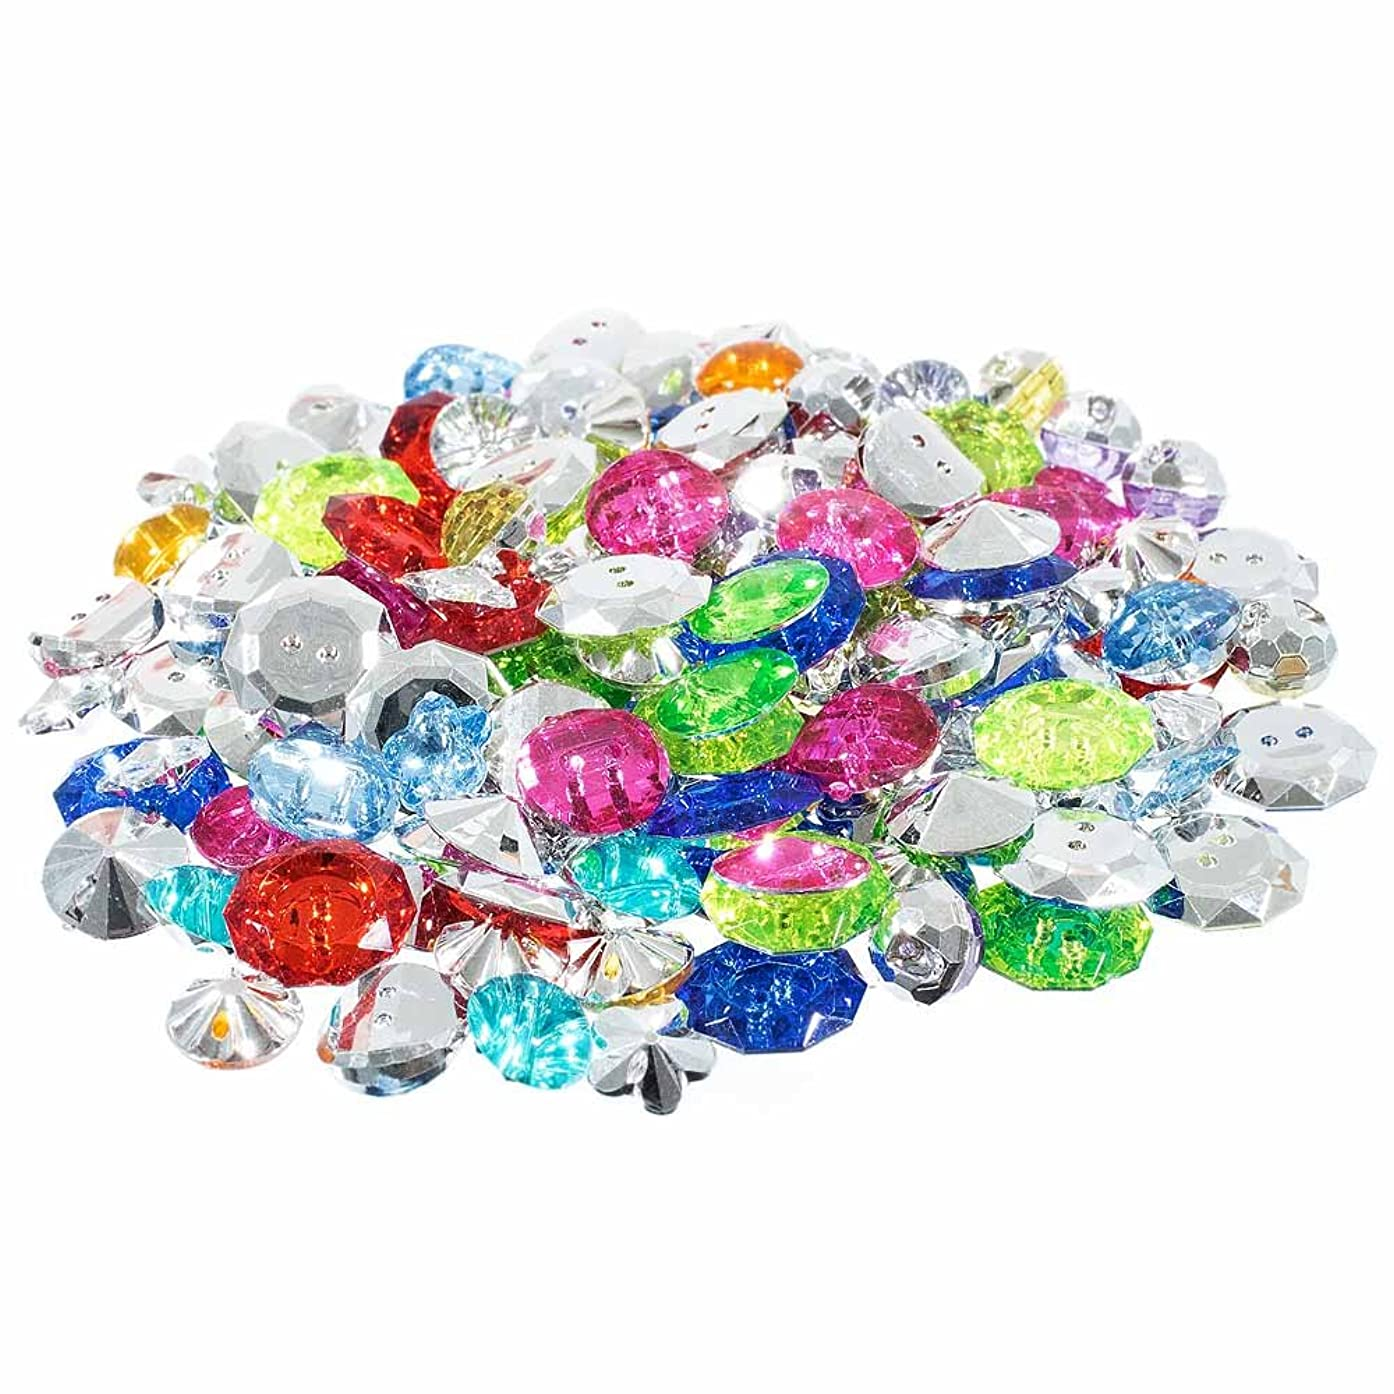 Assorted Small Plastic Jewel Button Pack – Multiple Colors, Styles, and Sizes – Crafting, Scrapbooking, and More